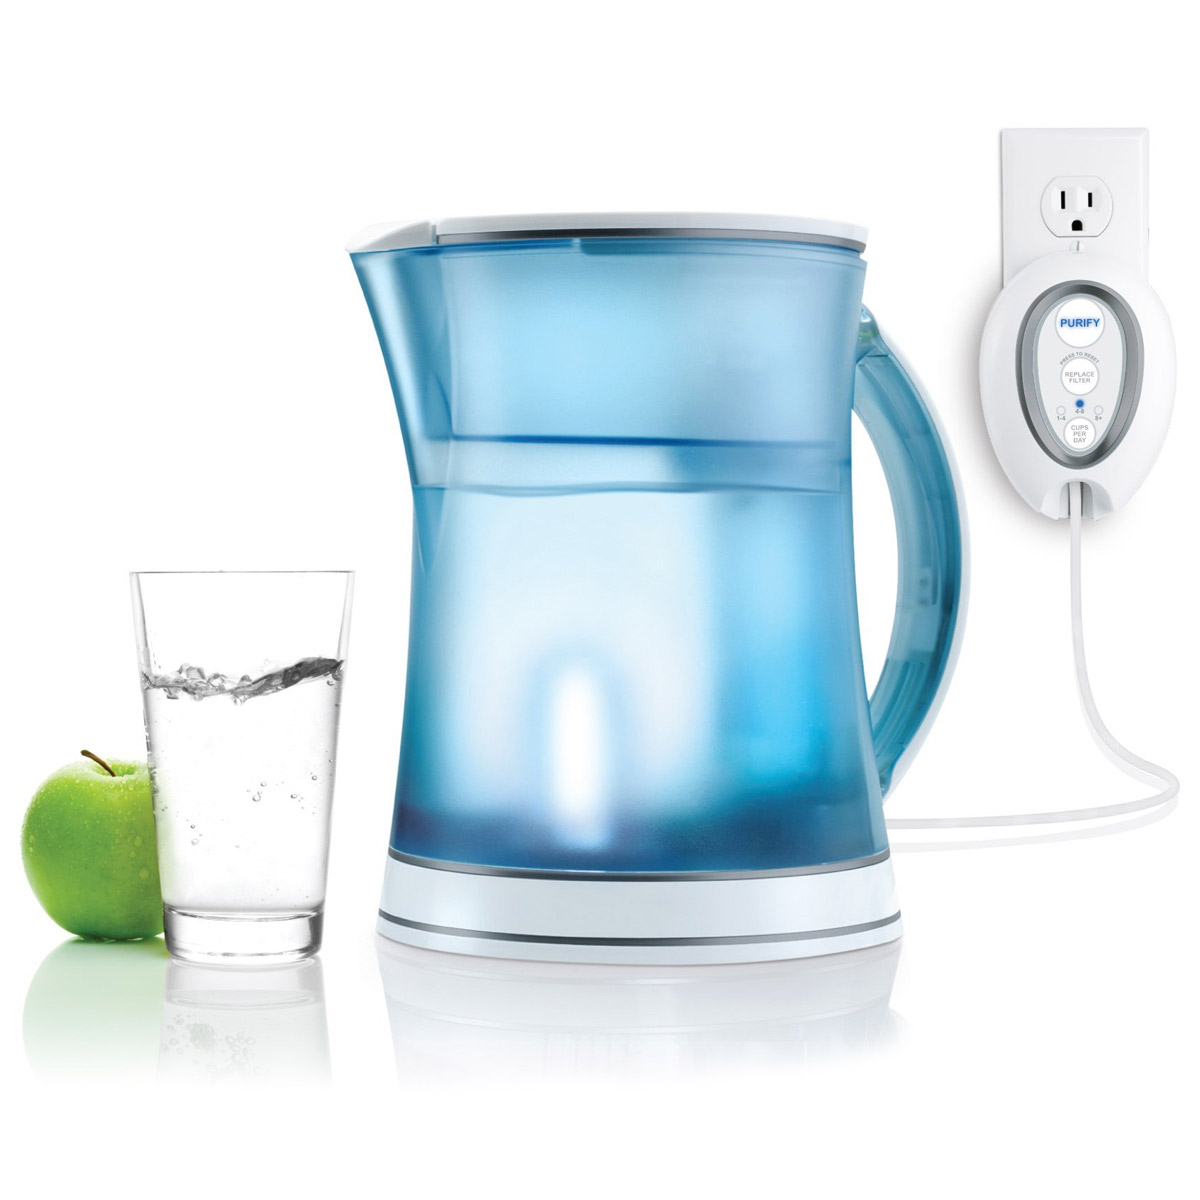 Large selection of replacement water filters, reverse osmosis membranes, testing kits and water filter system repair parts. From one water filter or